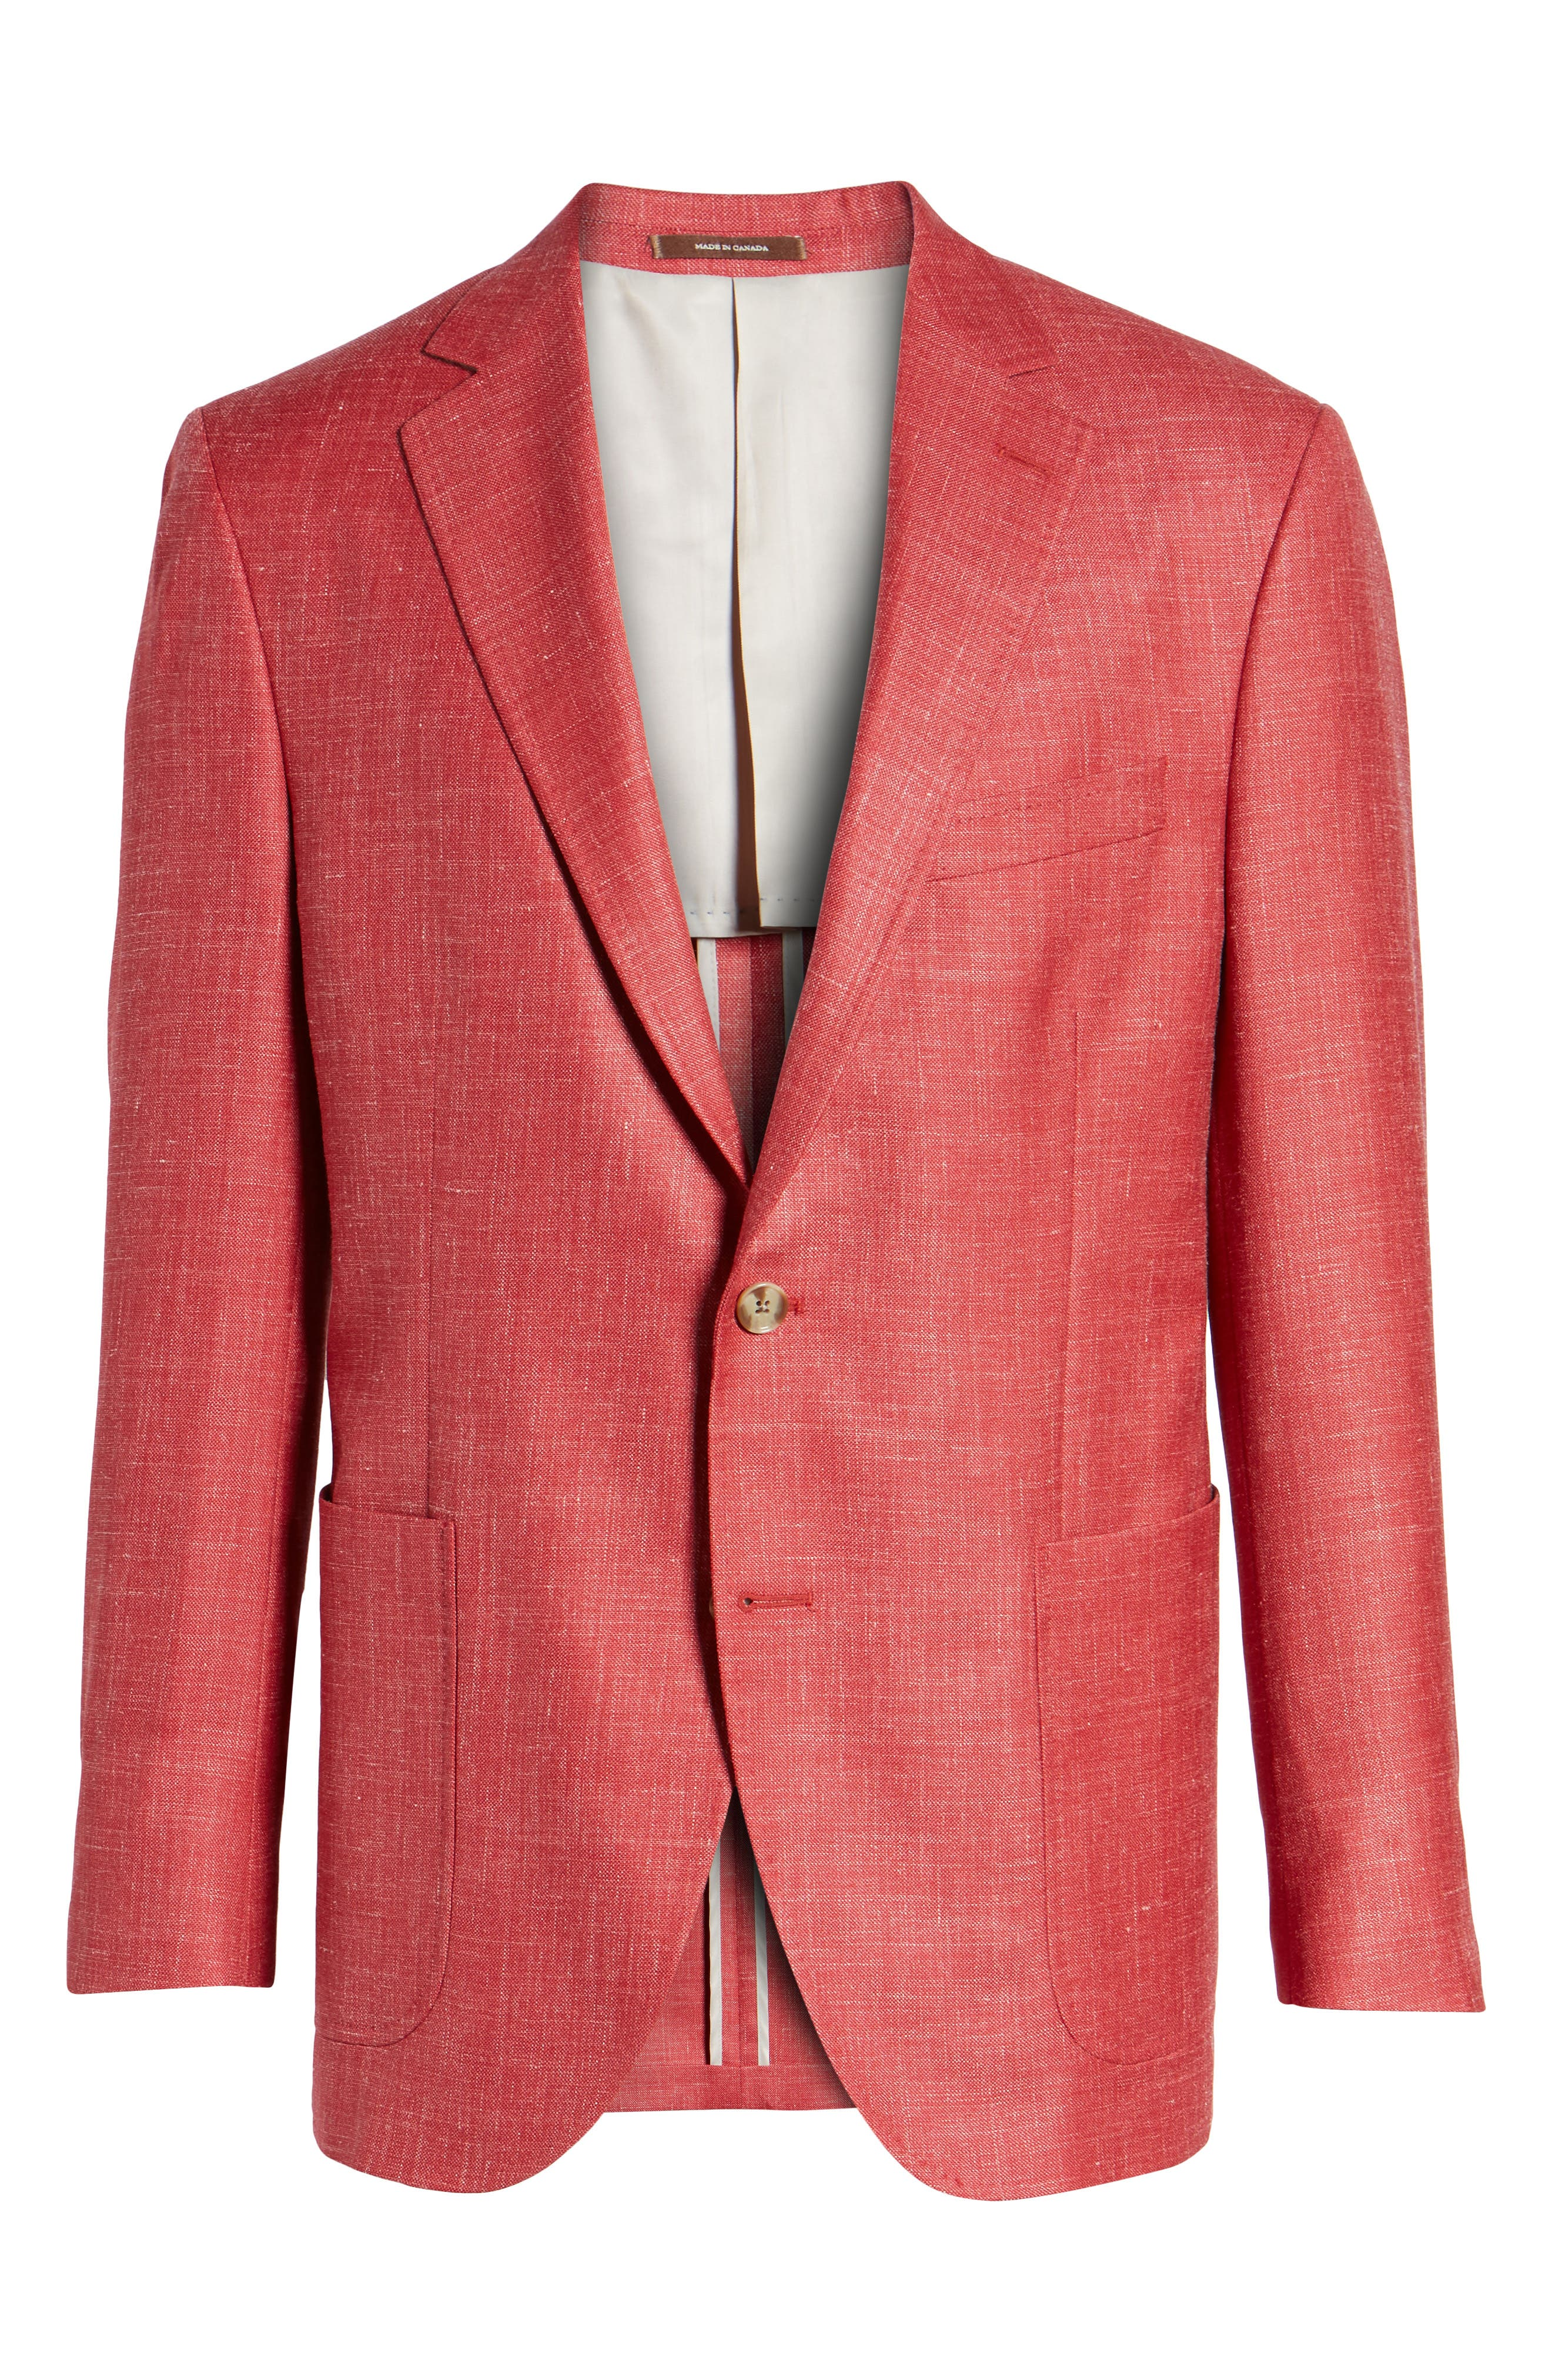 Classic Fit Wool Blend Blazer,                             Alternate thumbnail 6, color,                             Coral